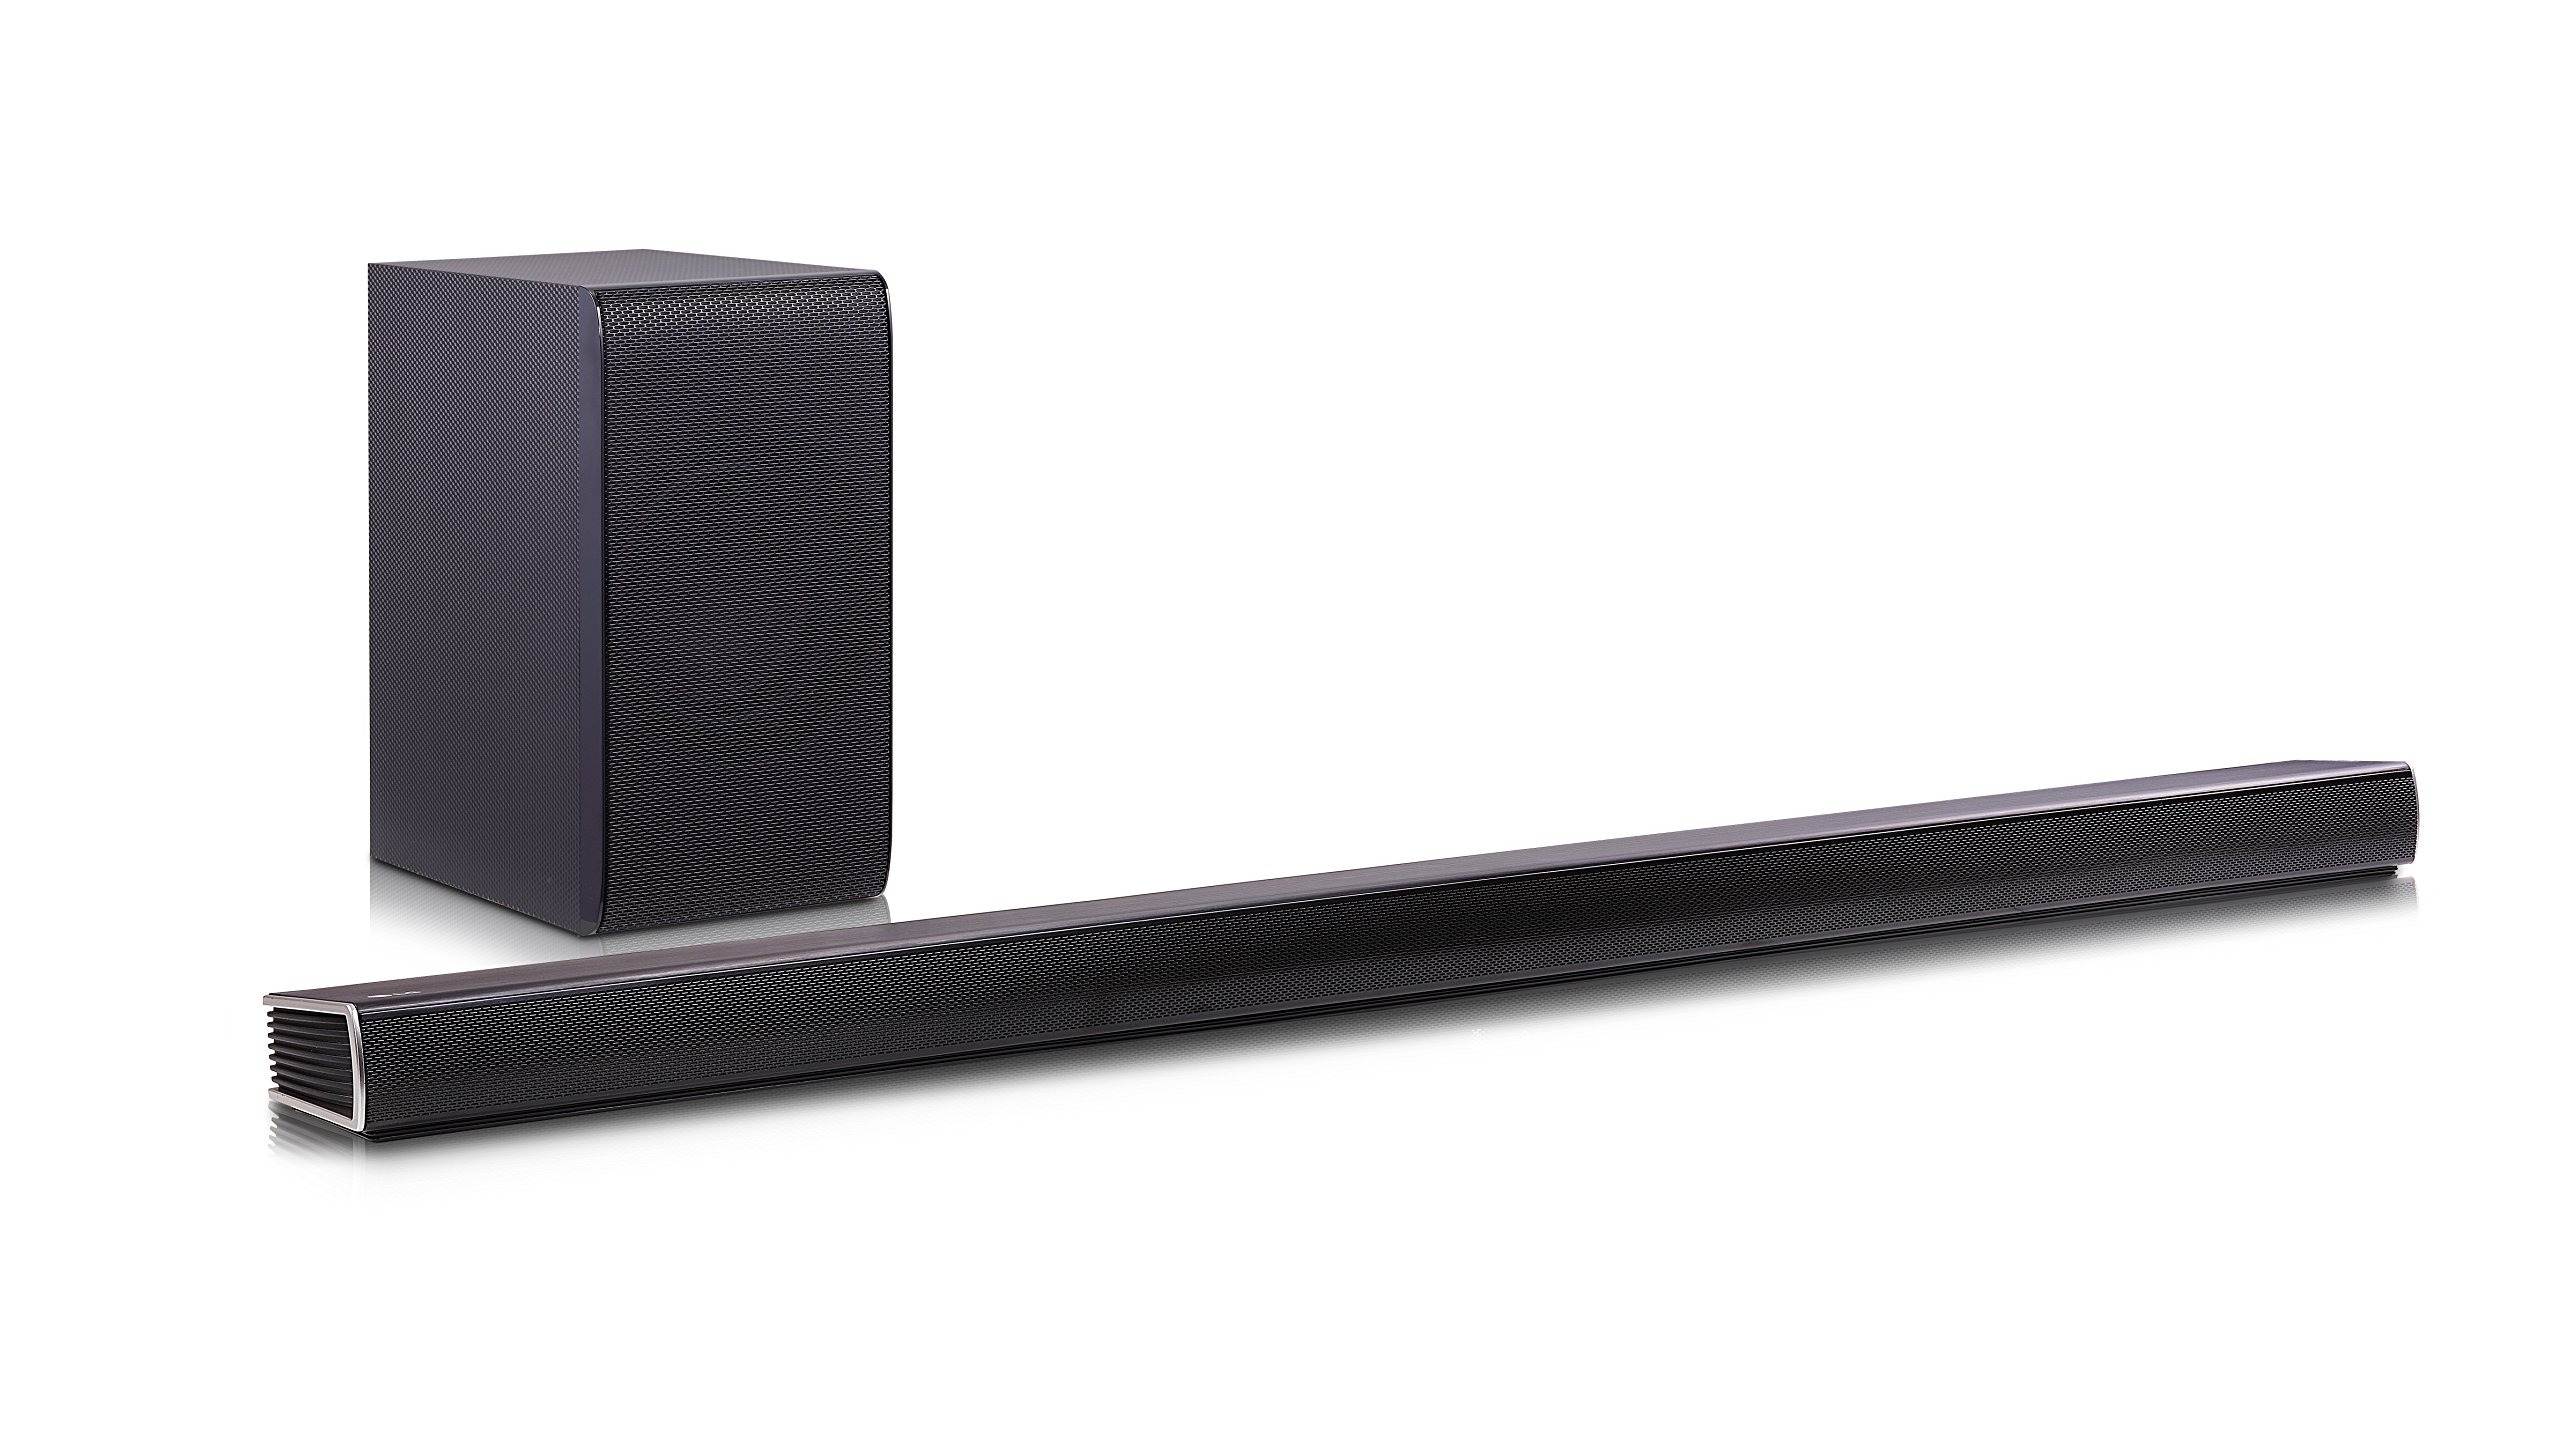 LG Electronics SH7B 4.1 Channel 360W Sound Bar with Wireless Subwoofer (2016 Model)